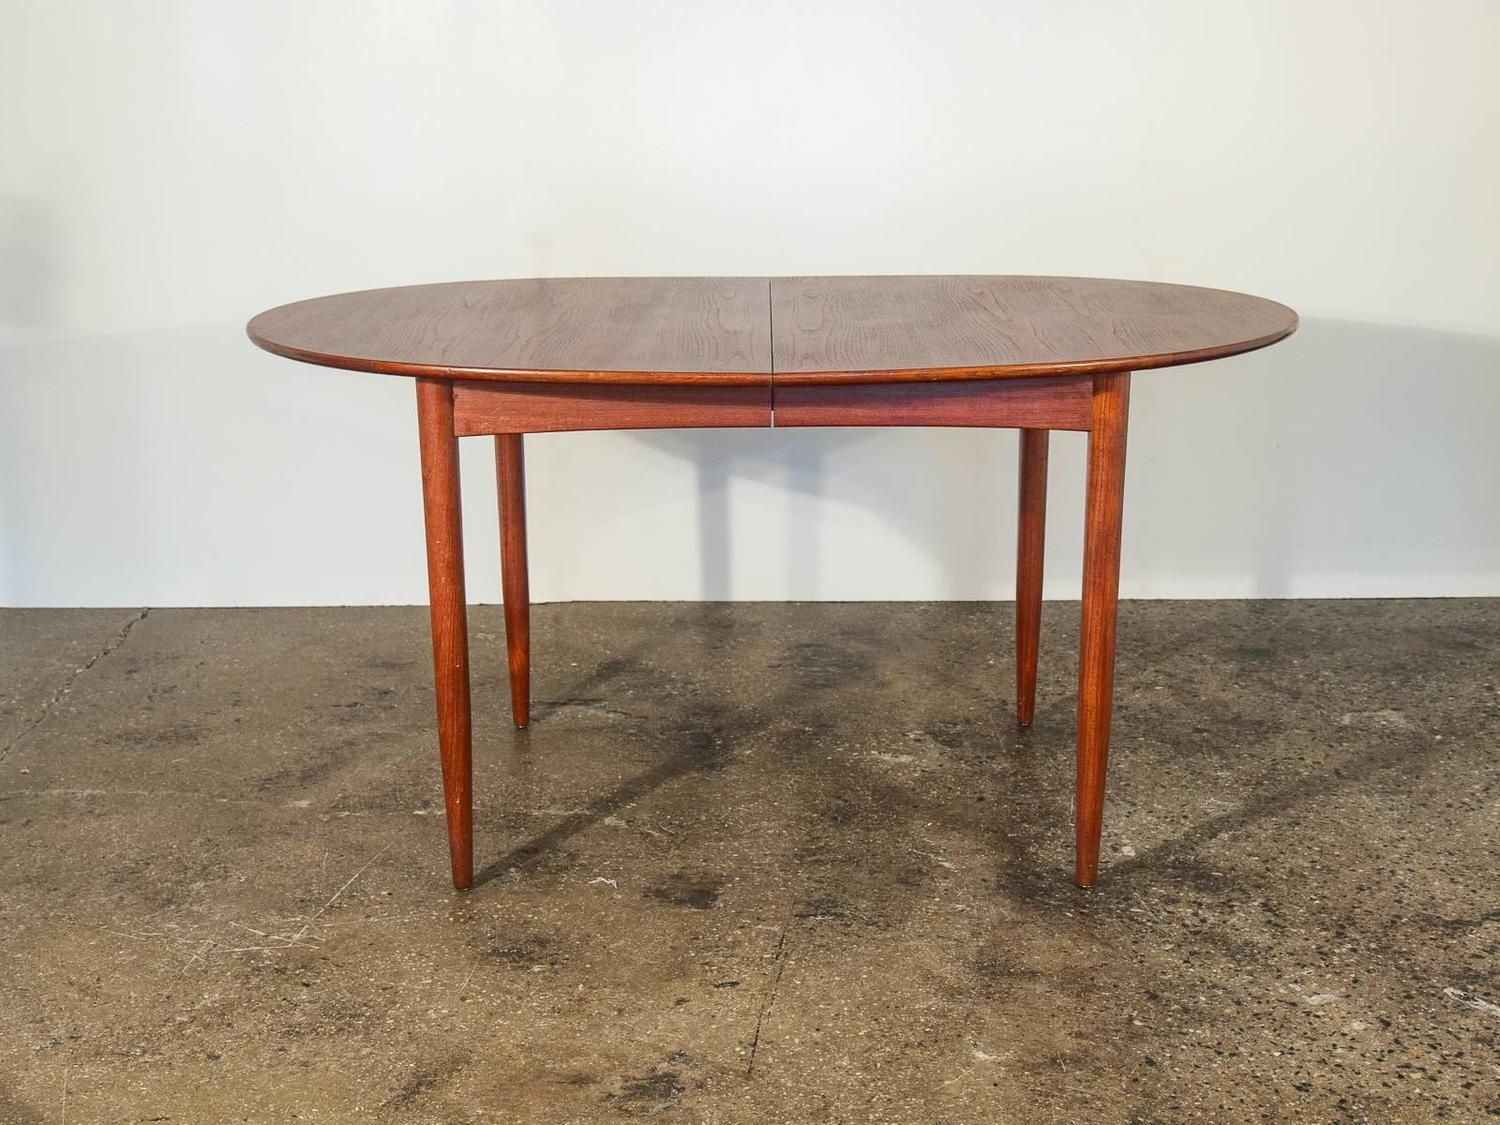 Teak Oval Dining Table Dining Table Scandinavian Dining Table Antique Scandinavian